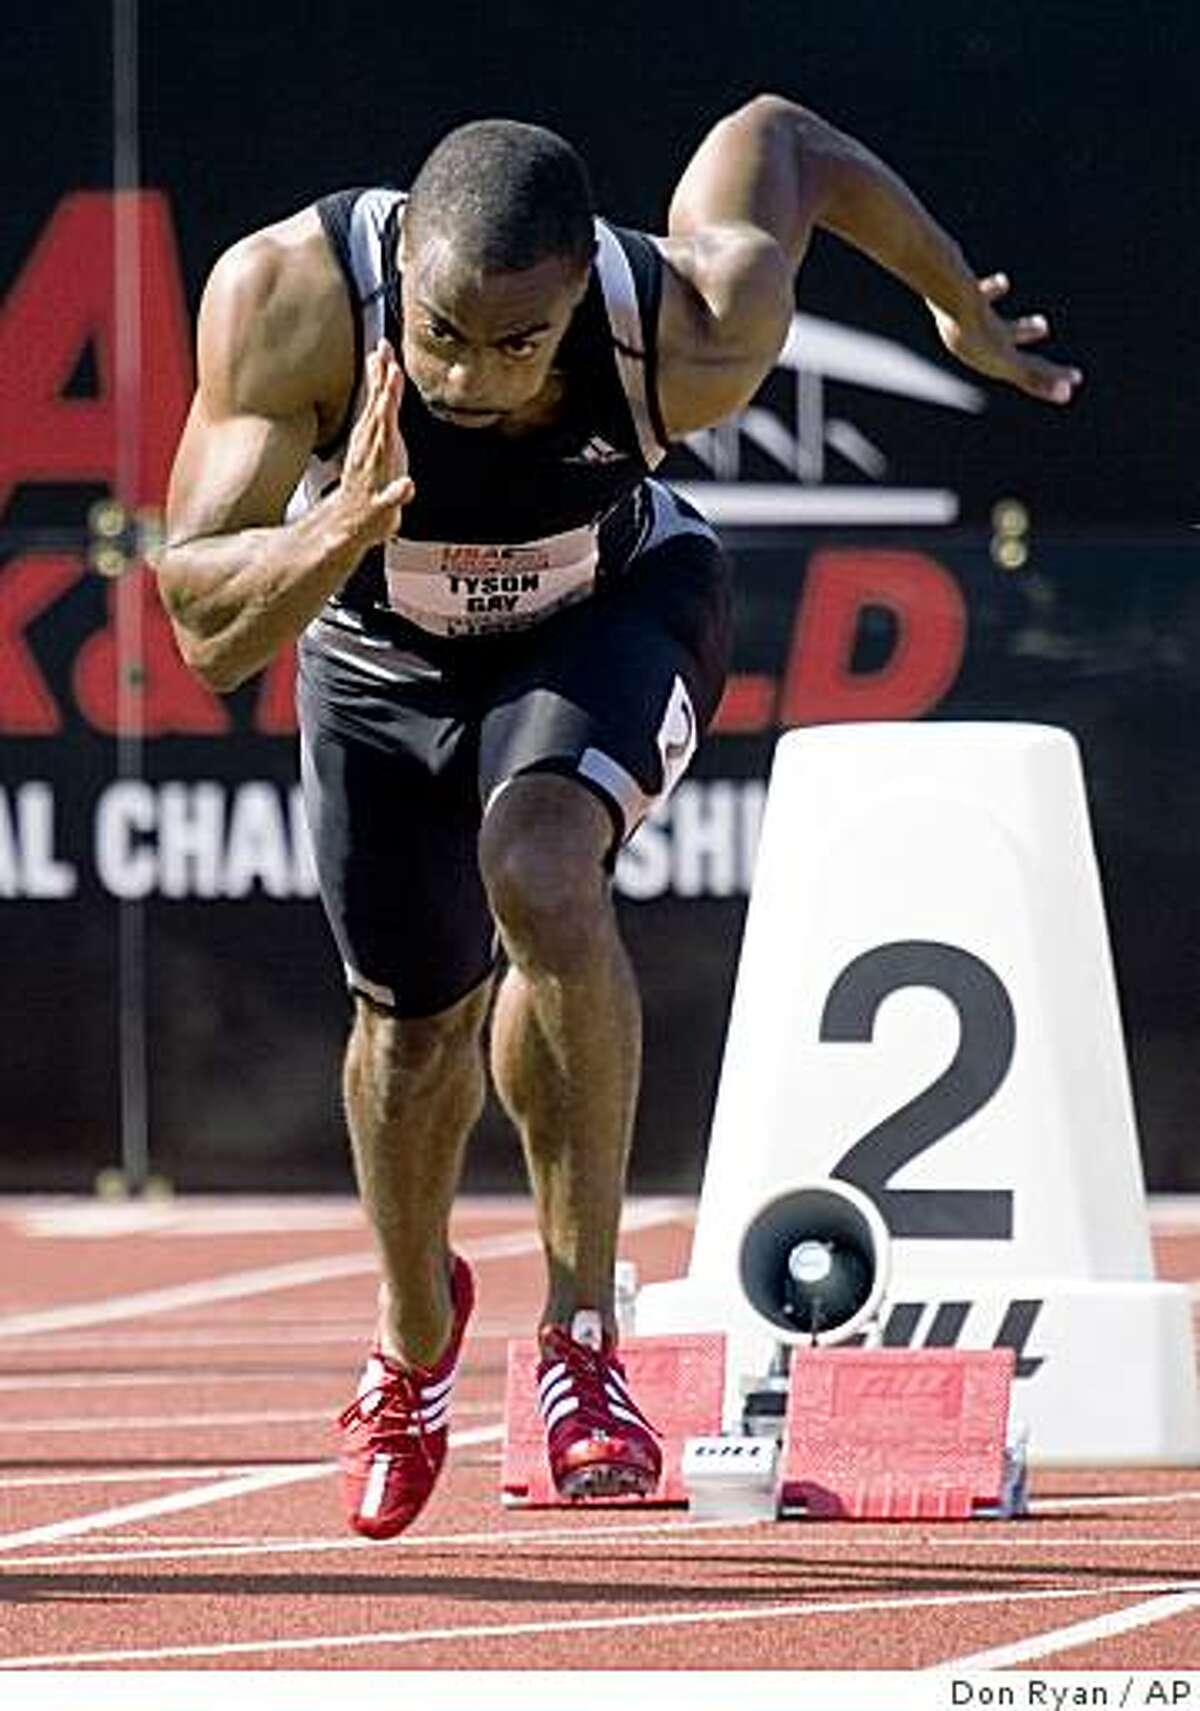 Sprinter Tyson Gay shoots out of the blocks on his way to winning his preliminary heat during the 100 meters on the first day of the U.S. track and field championships in Eugene, Ore., Thursday, June 25, 2009. Gay finished with a wind-aided time of 9.75 seconds. (AP Photo/Don Ryan)